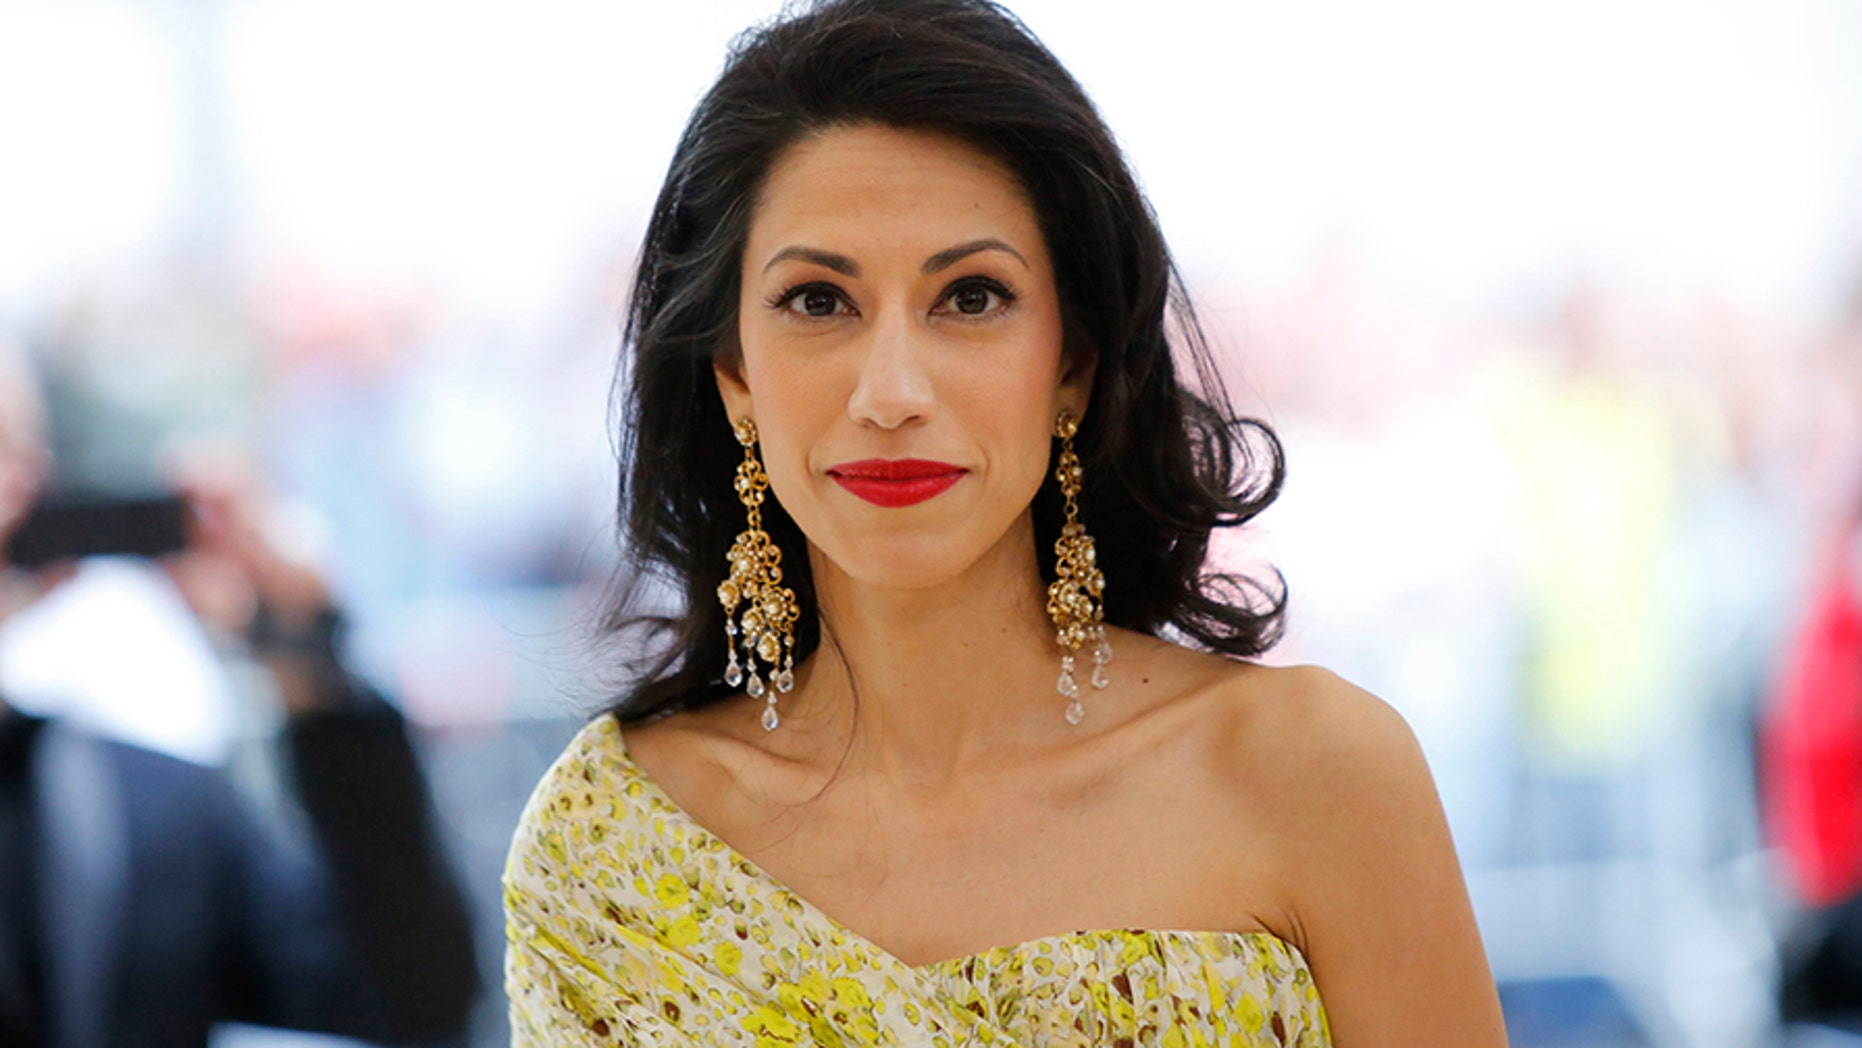 Huma Abedin was seen at the Metropolitan Museum of Art's gala this month.